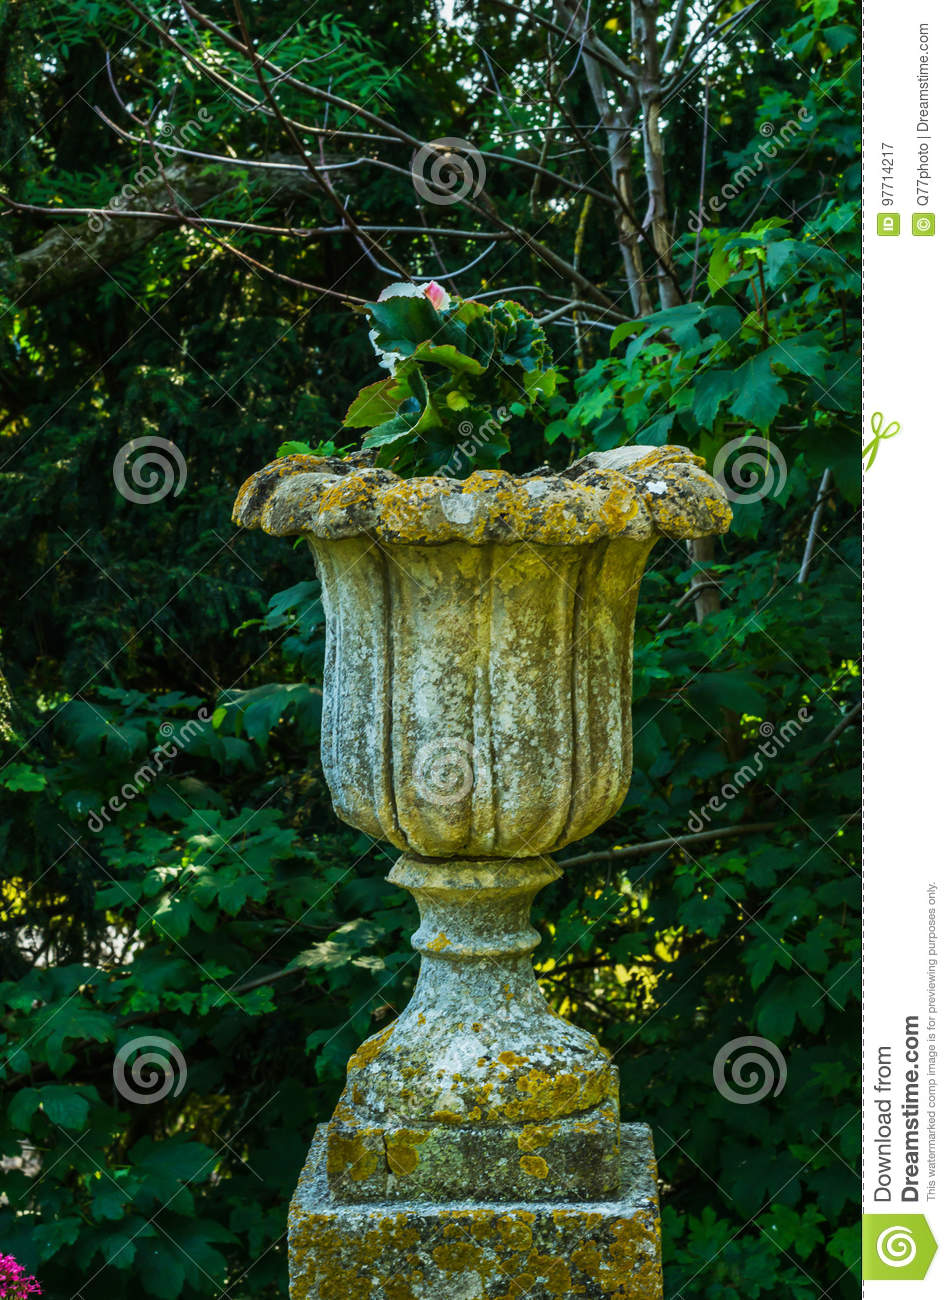 Dreamstime.com & Concrete Flower Pots In The Garden On A Pedestal Stylized Antique A ...